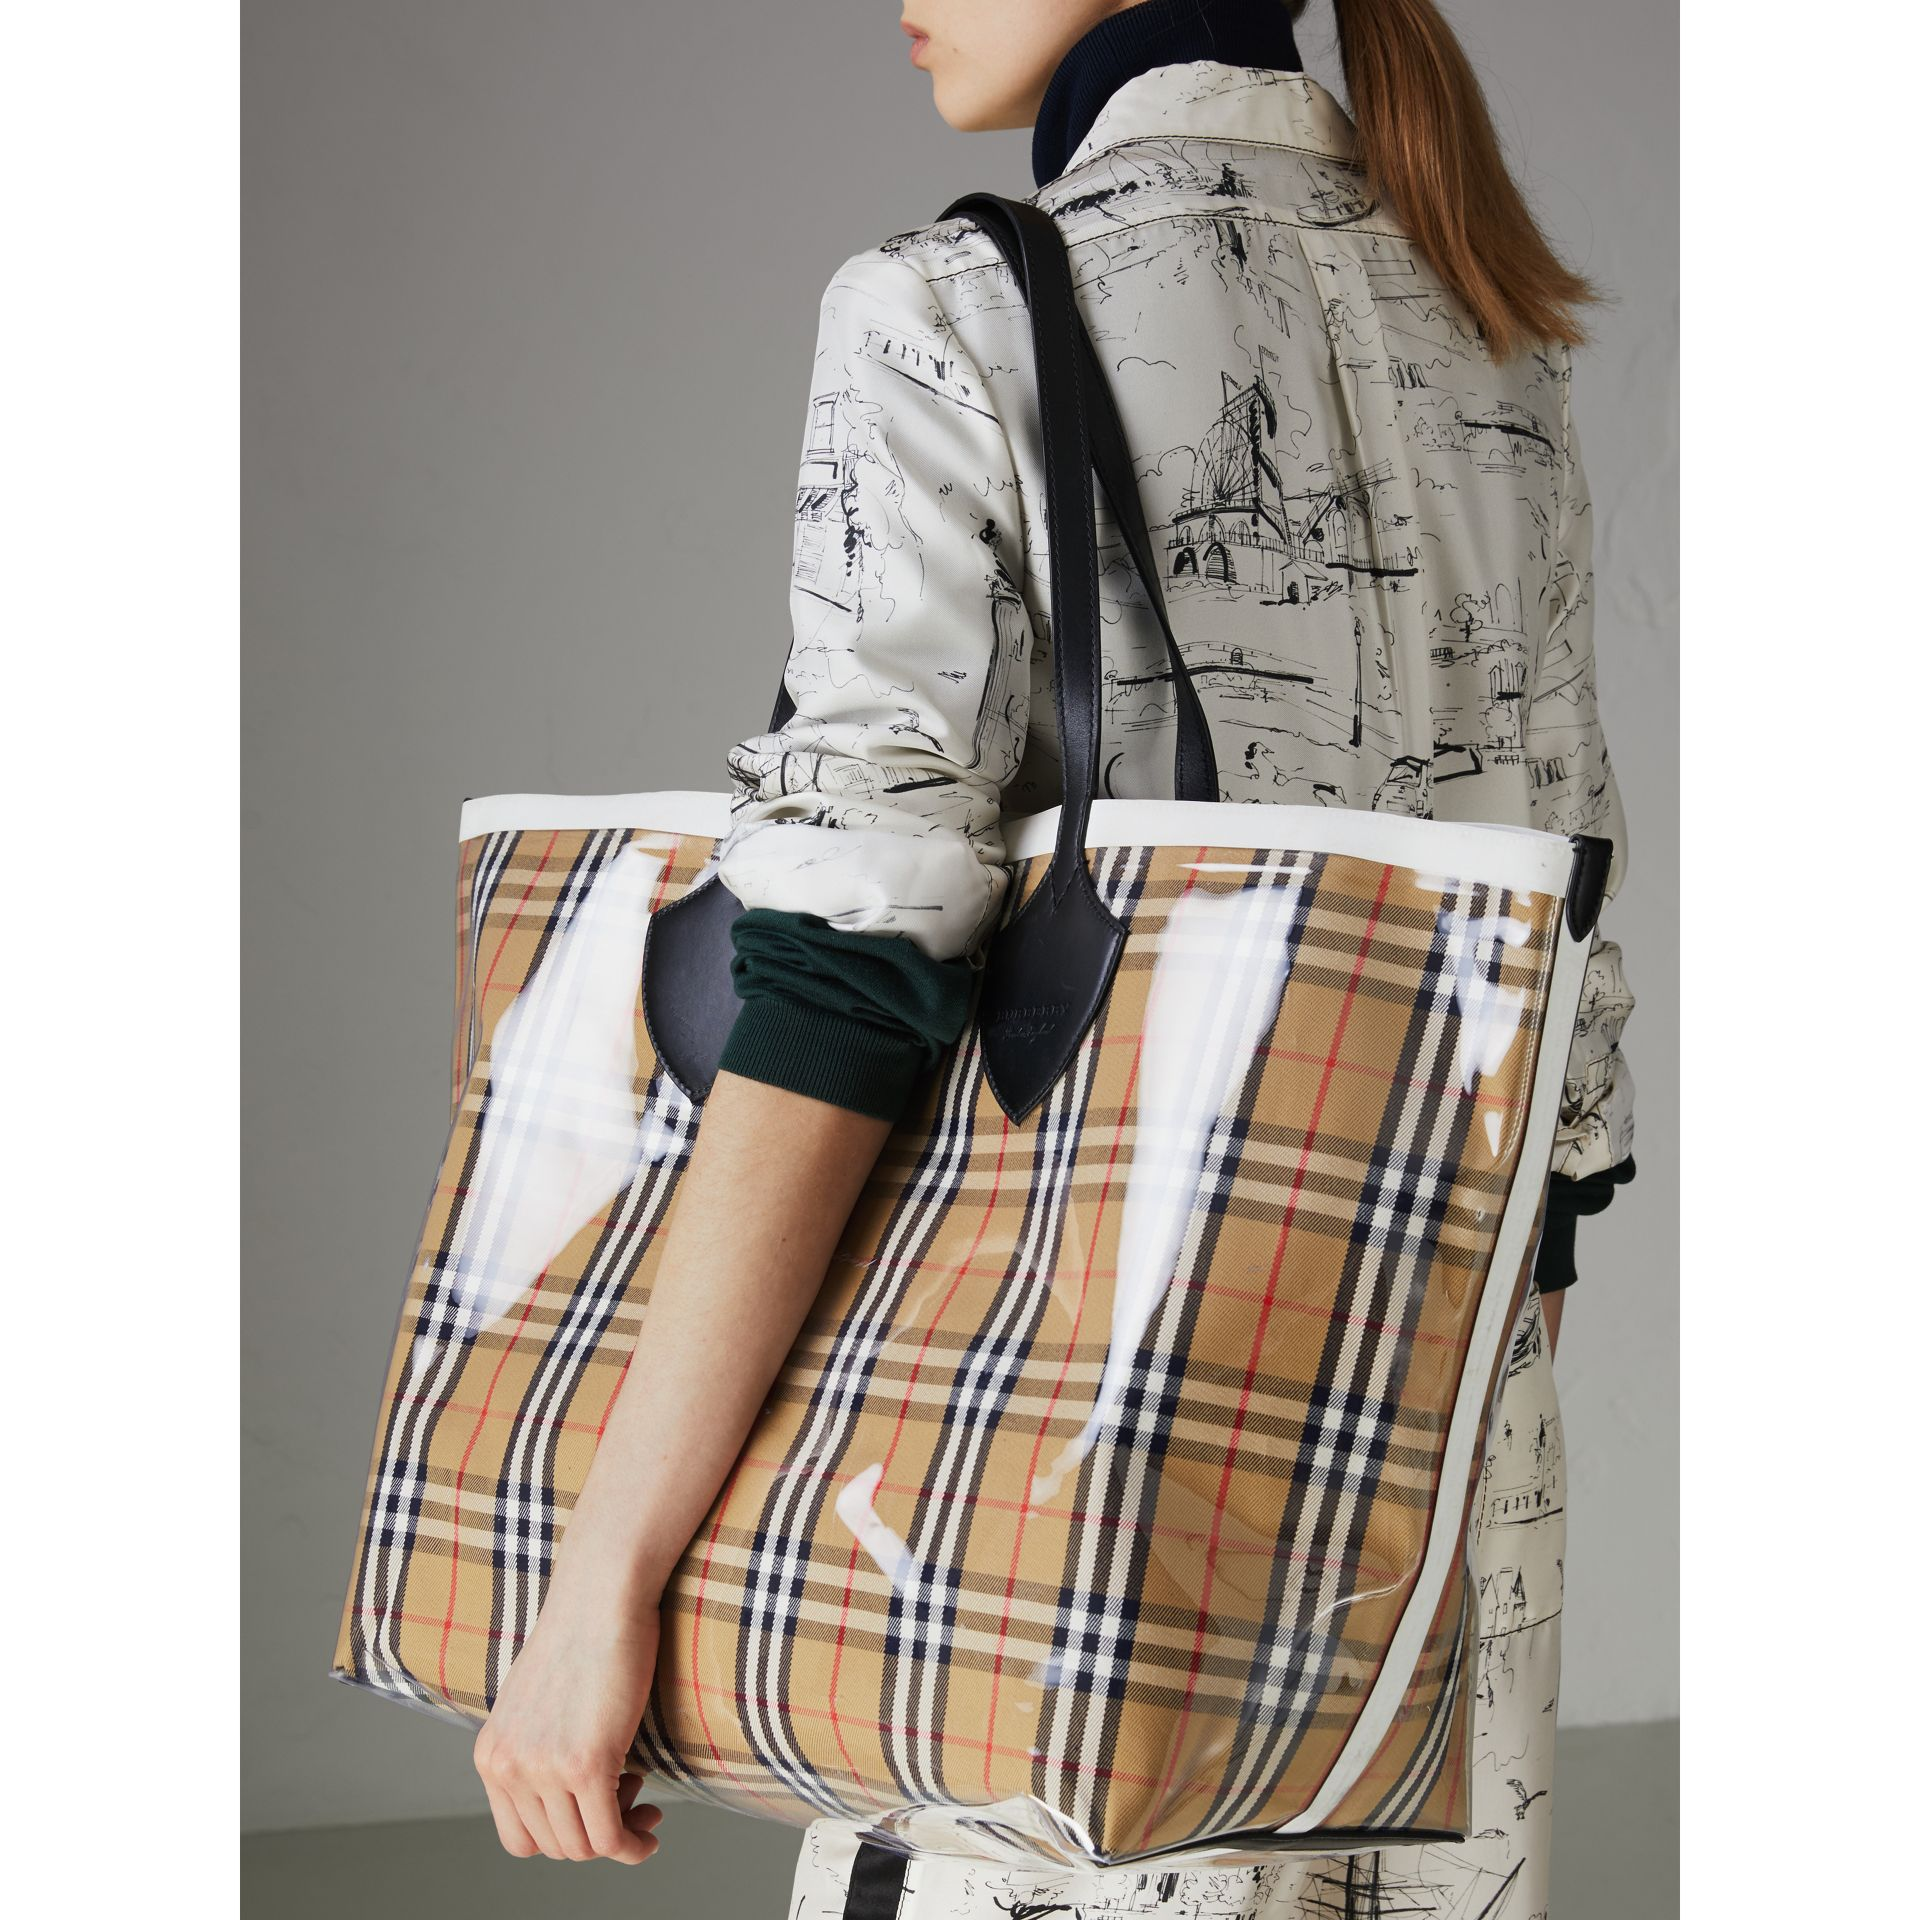 Sac tote The Giant en plastique et coton à motif Vintage check (Jaune Antique/blanc) - Femme | Burberry - photo de la galerie 3